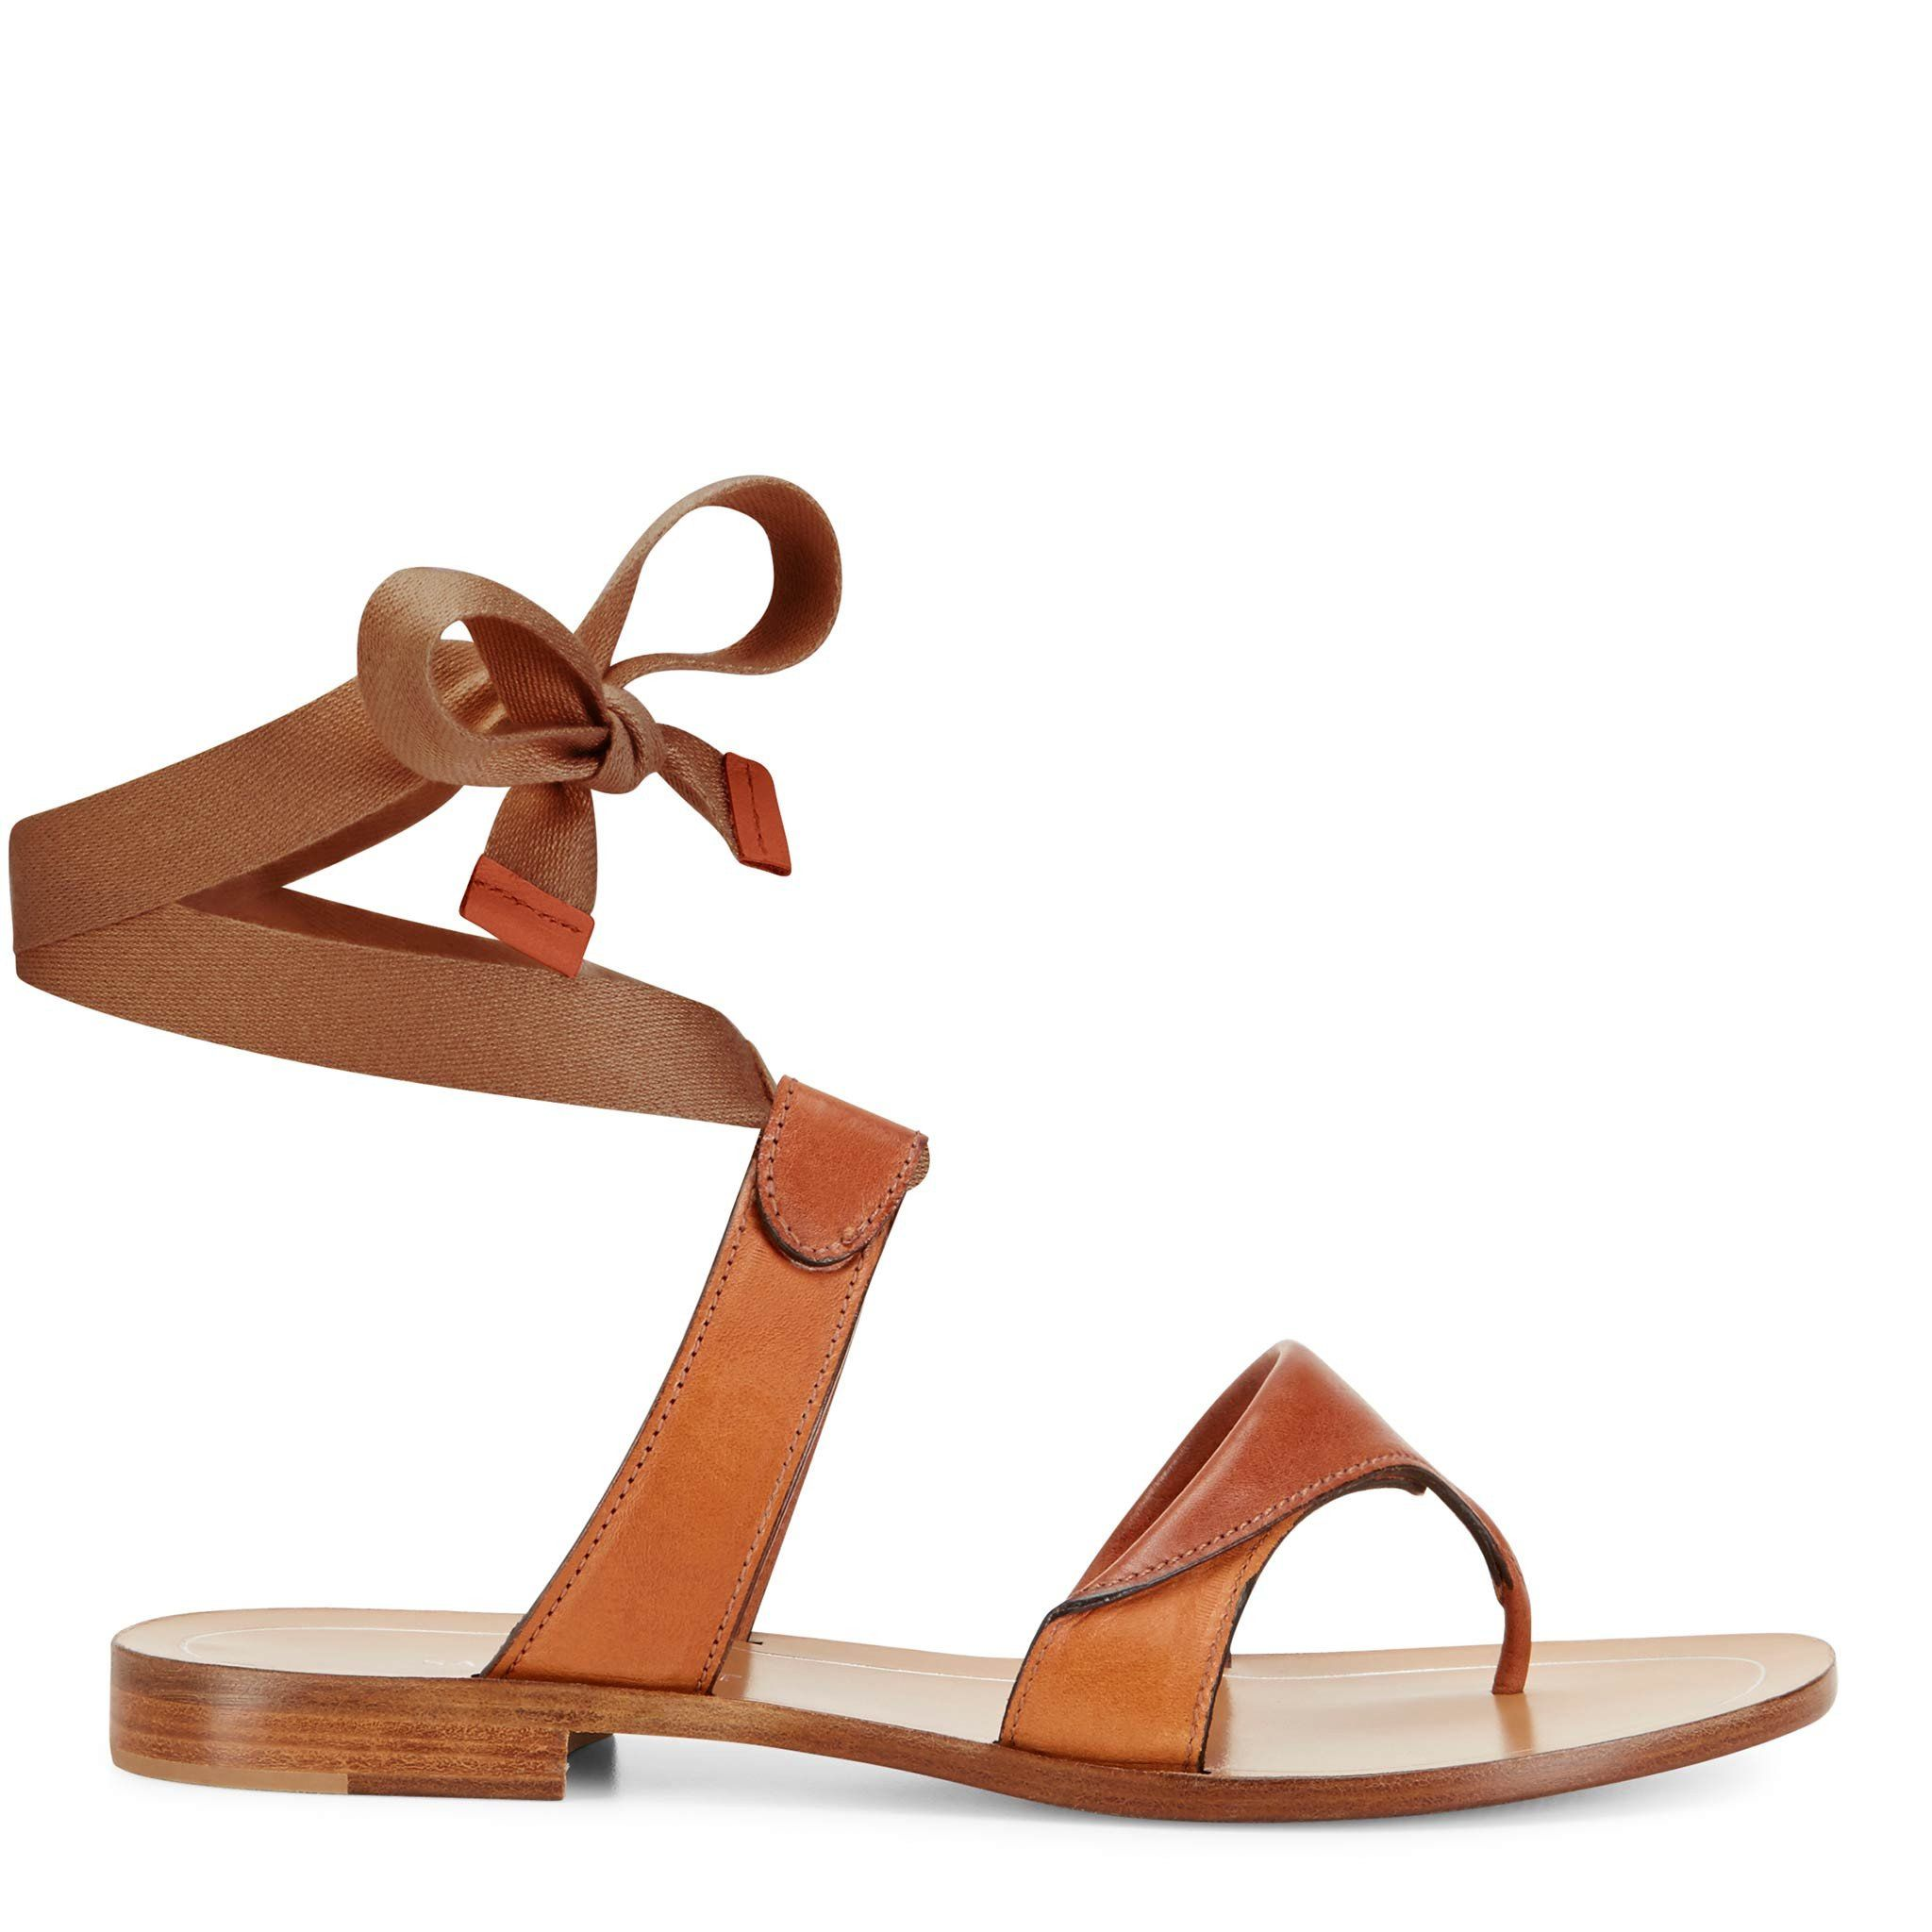 Meghan Markles All-Time Favorite Sandal Style Can Be Yours for Only 10